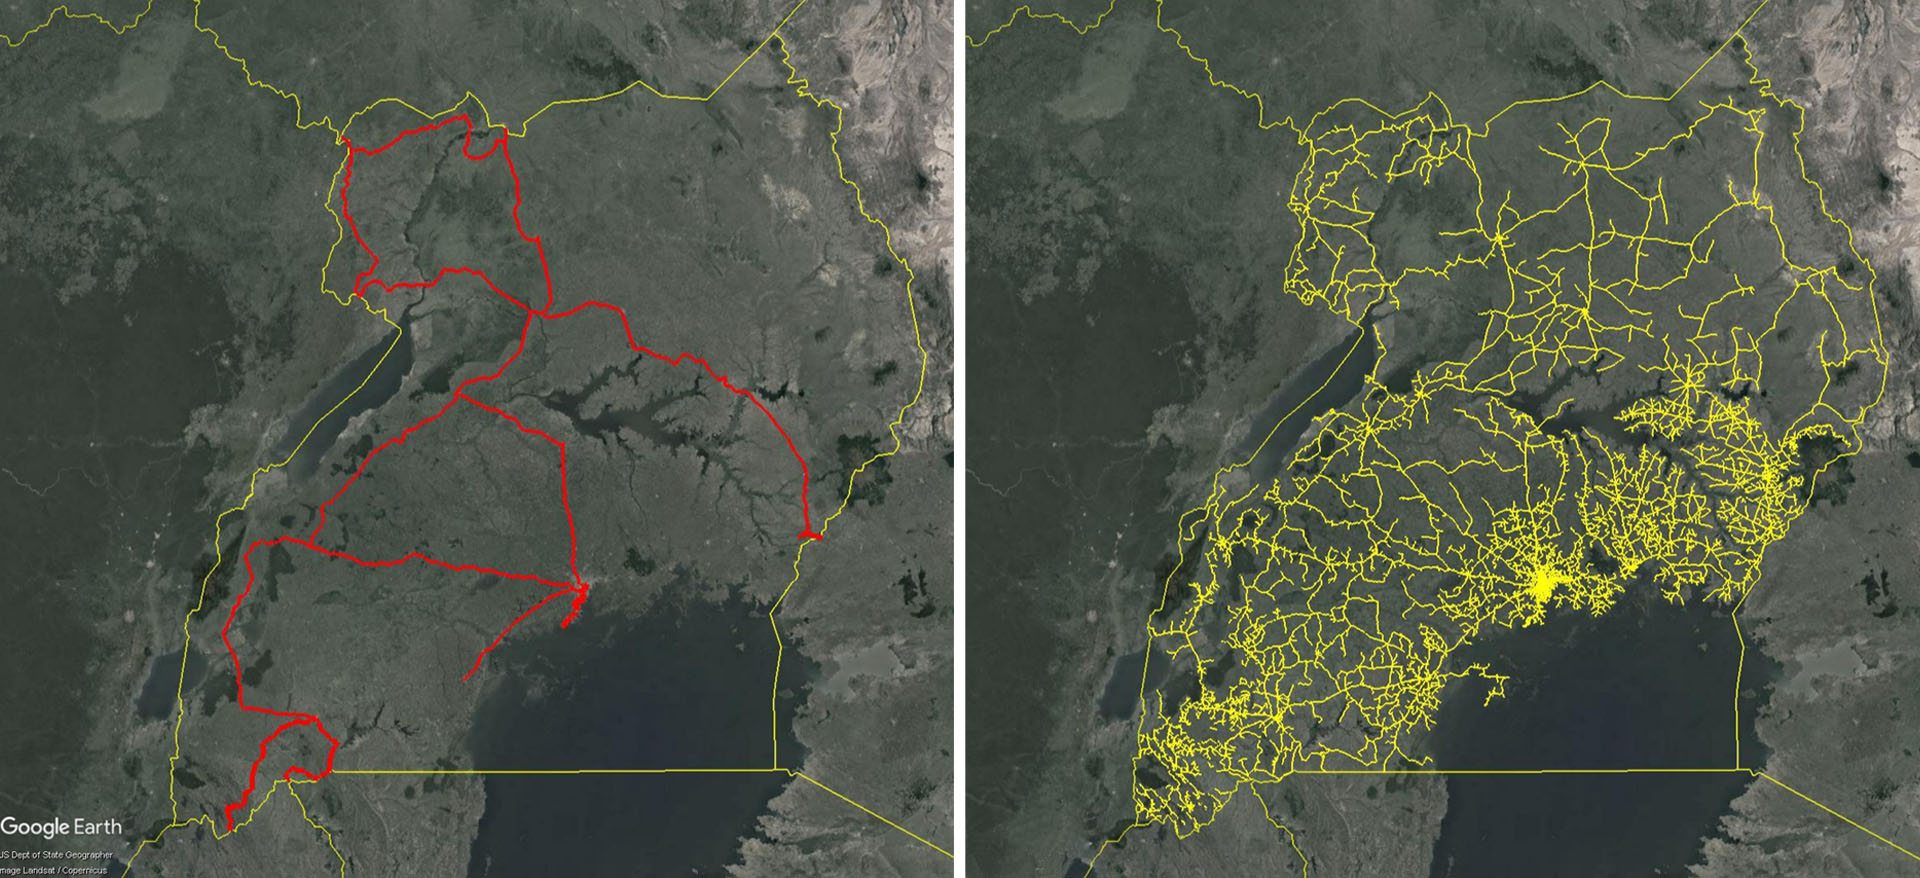 Maps of Uganda comparing the extent of the total fiber footprint (shown in red) and the MV power lines (shown in yellow). Sources: EnergyData.info, Itu.int, Ucc.co.ug, Google Earth